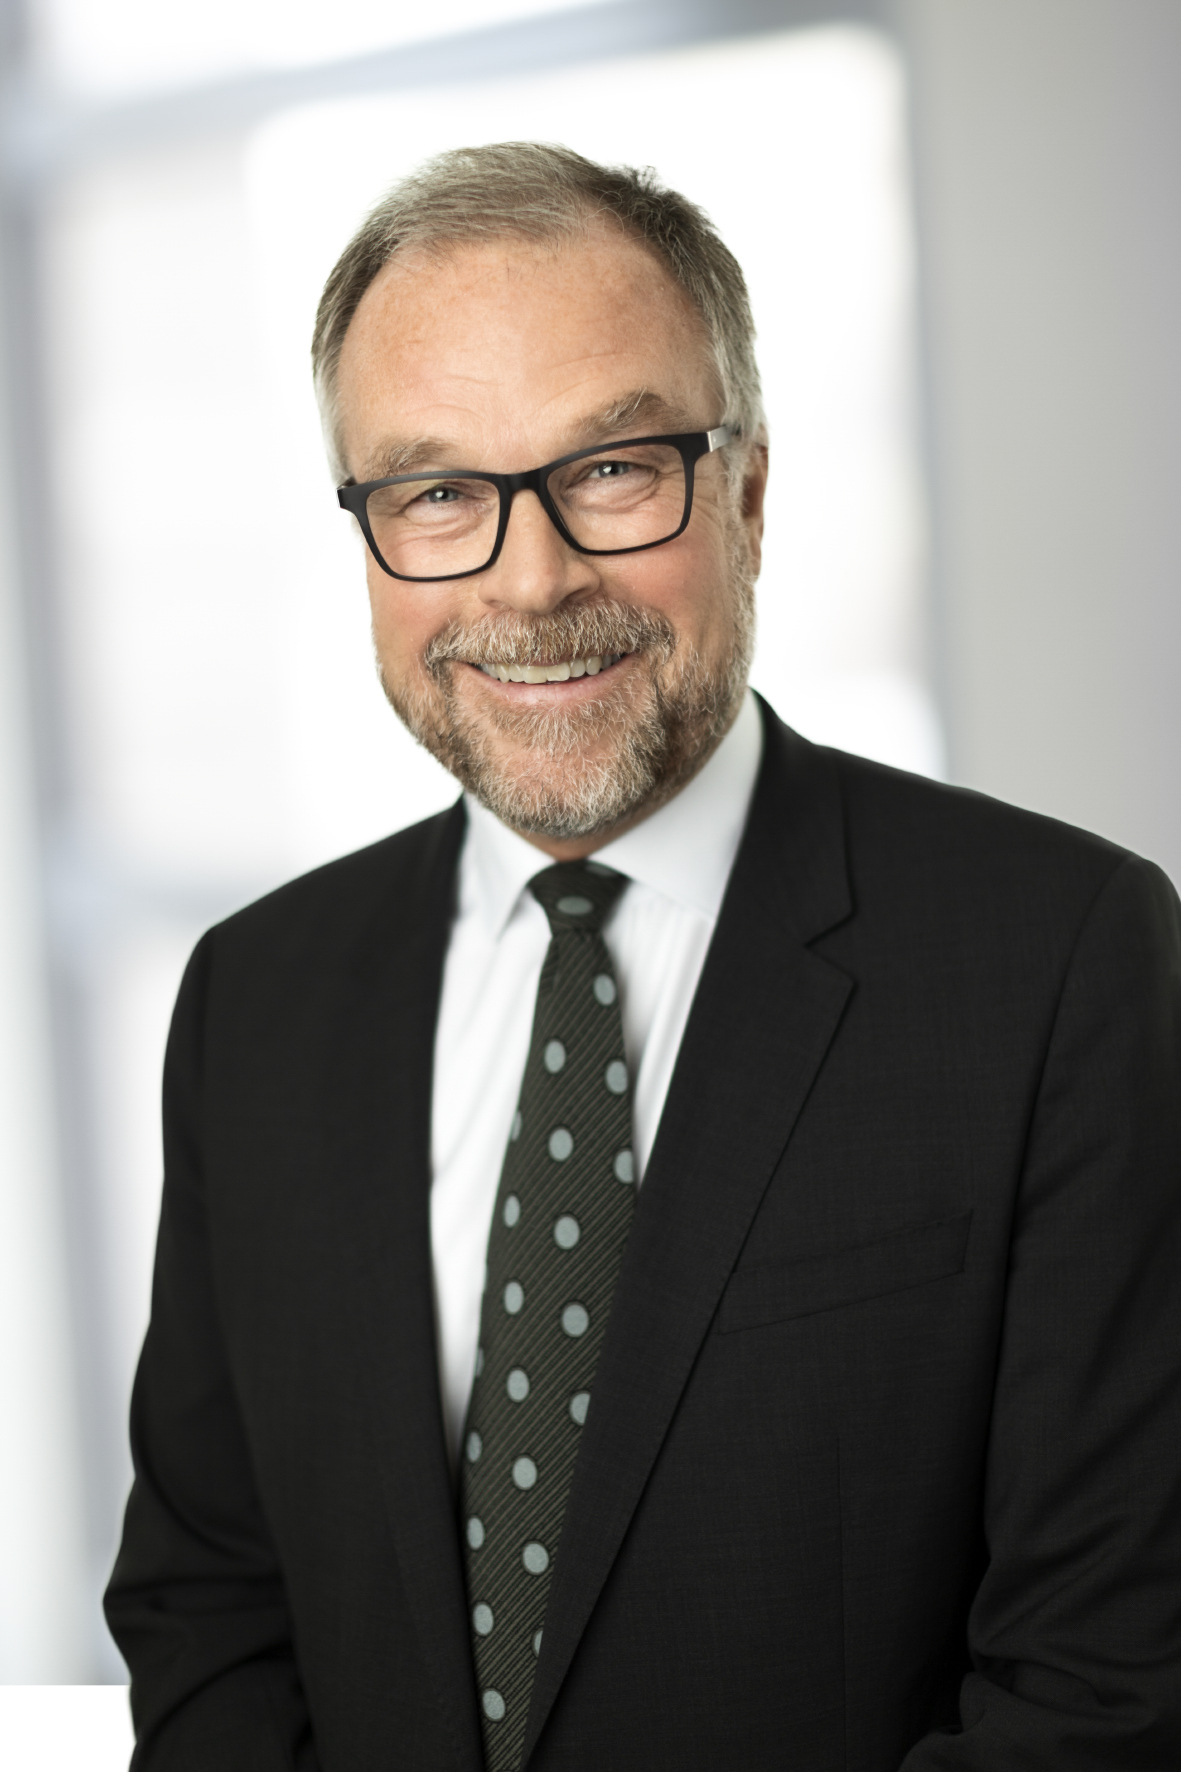 Trelleborg appoints Fredrik Nilsson as chief financial officer